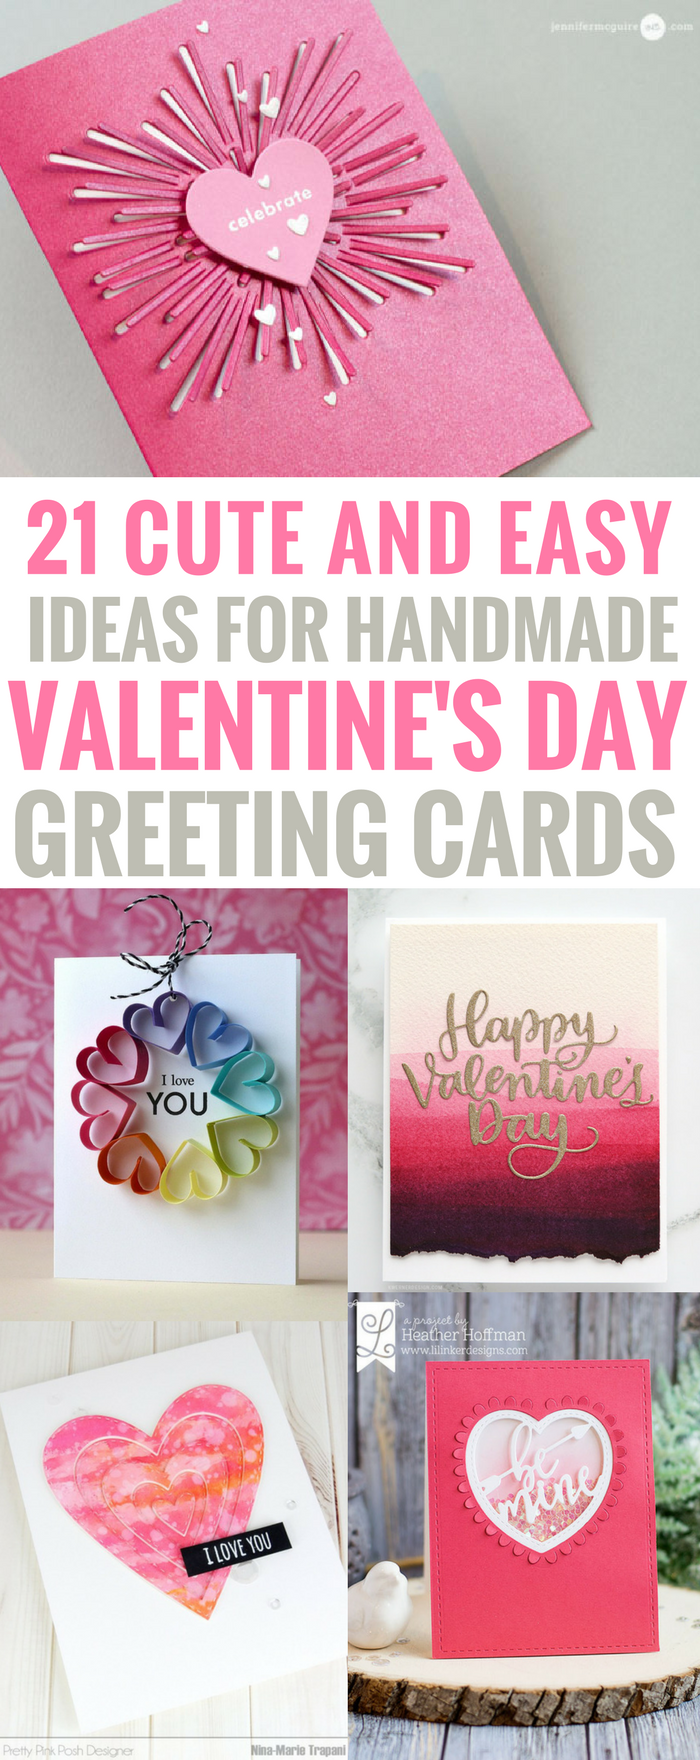 21 amazingly cute and easy ideas for handmade valentines day cards valentinesday papercrafts greetingcard diy valentines day cards easy handmade cards for him m4hsunfo